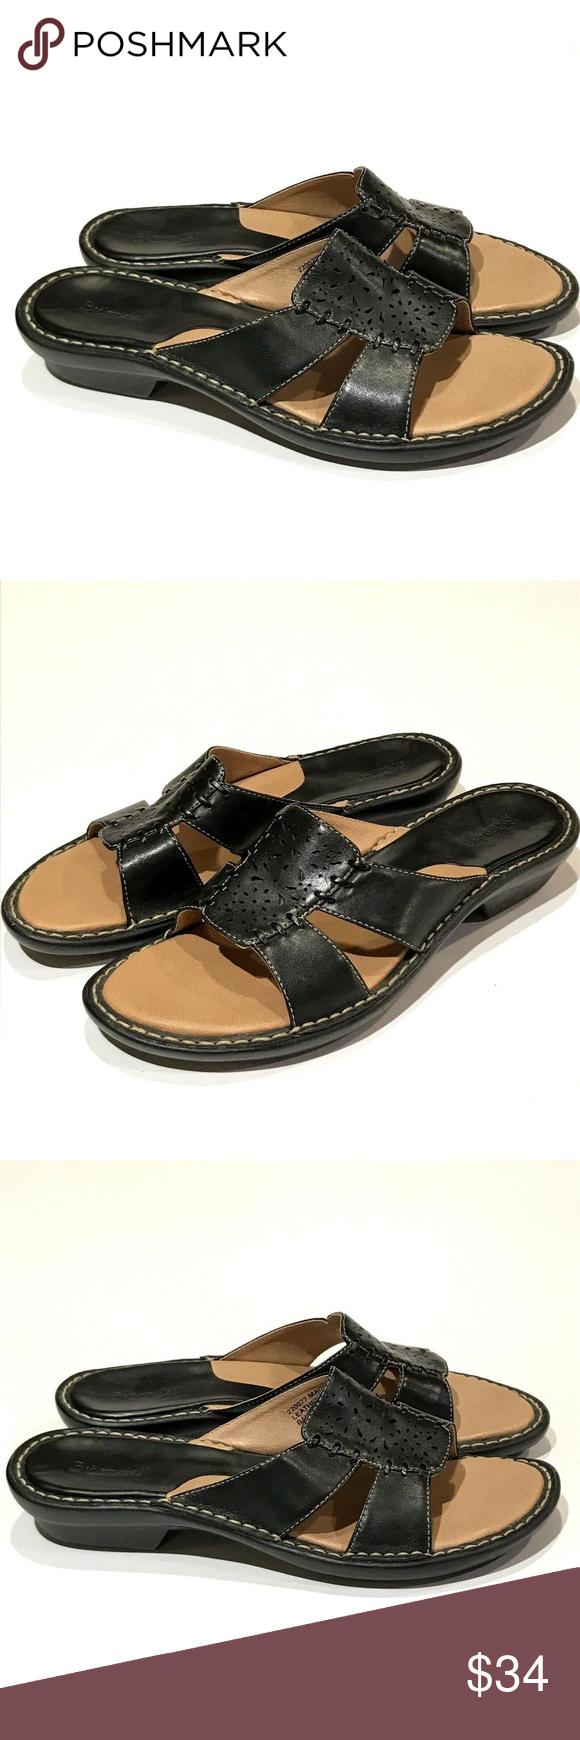 93c7551c6ec Bjorndal Black Sandals Maggie Slip On Size 7.5 M Women s Bjorndal black  Maggie slip on sandals. Size  7.5 M Style    220077 Leather Upper Approx  heel ...